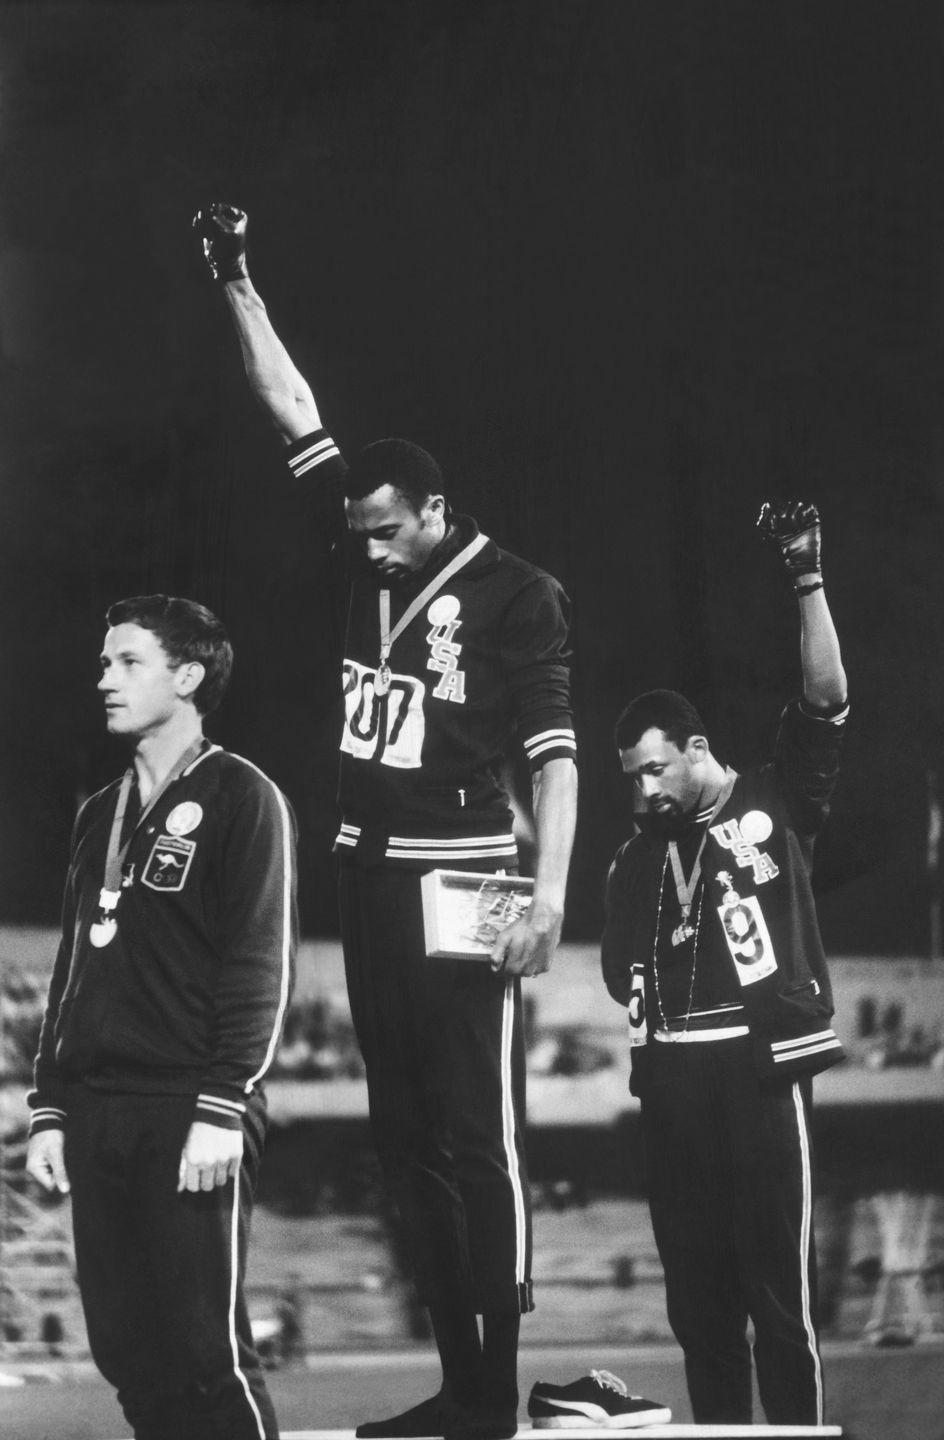 <p>When Tommie Smith and John Carlos took the podium to accept their gold and bronze medals, the African American athletes decided to make a statement about racism in their home country. Both Smith and Carlos wore necklaces to represent lynchings and gave the black power salute on the podium in a political protest that has remained an iconic moment in history. </p>